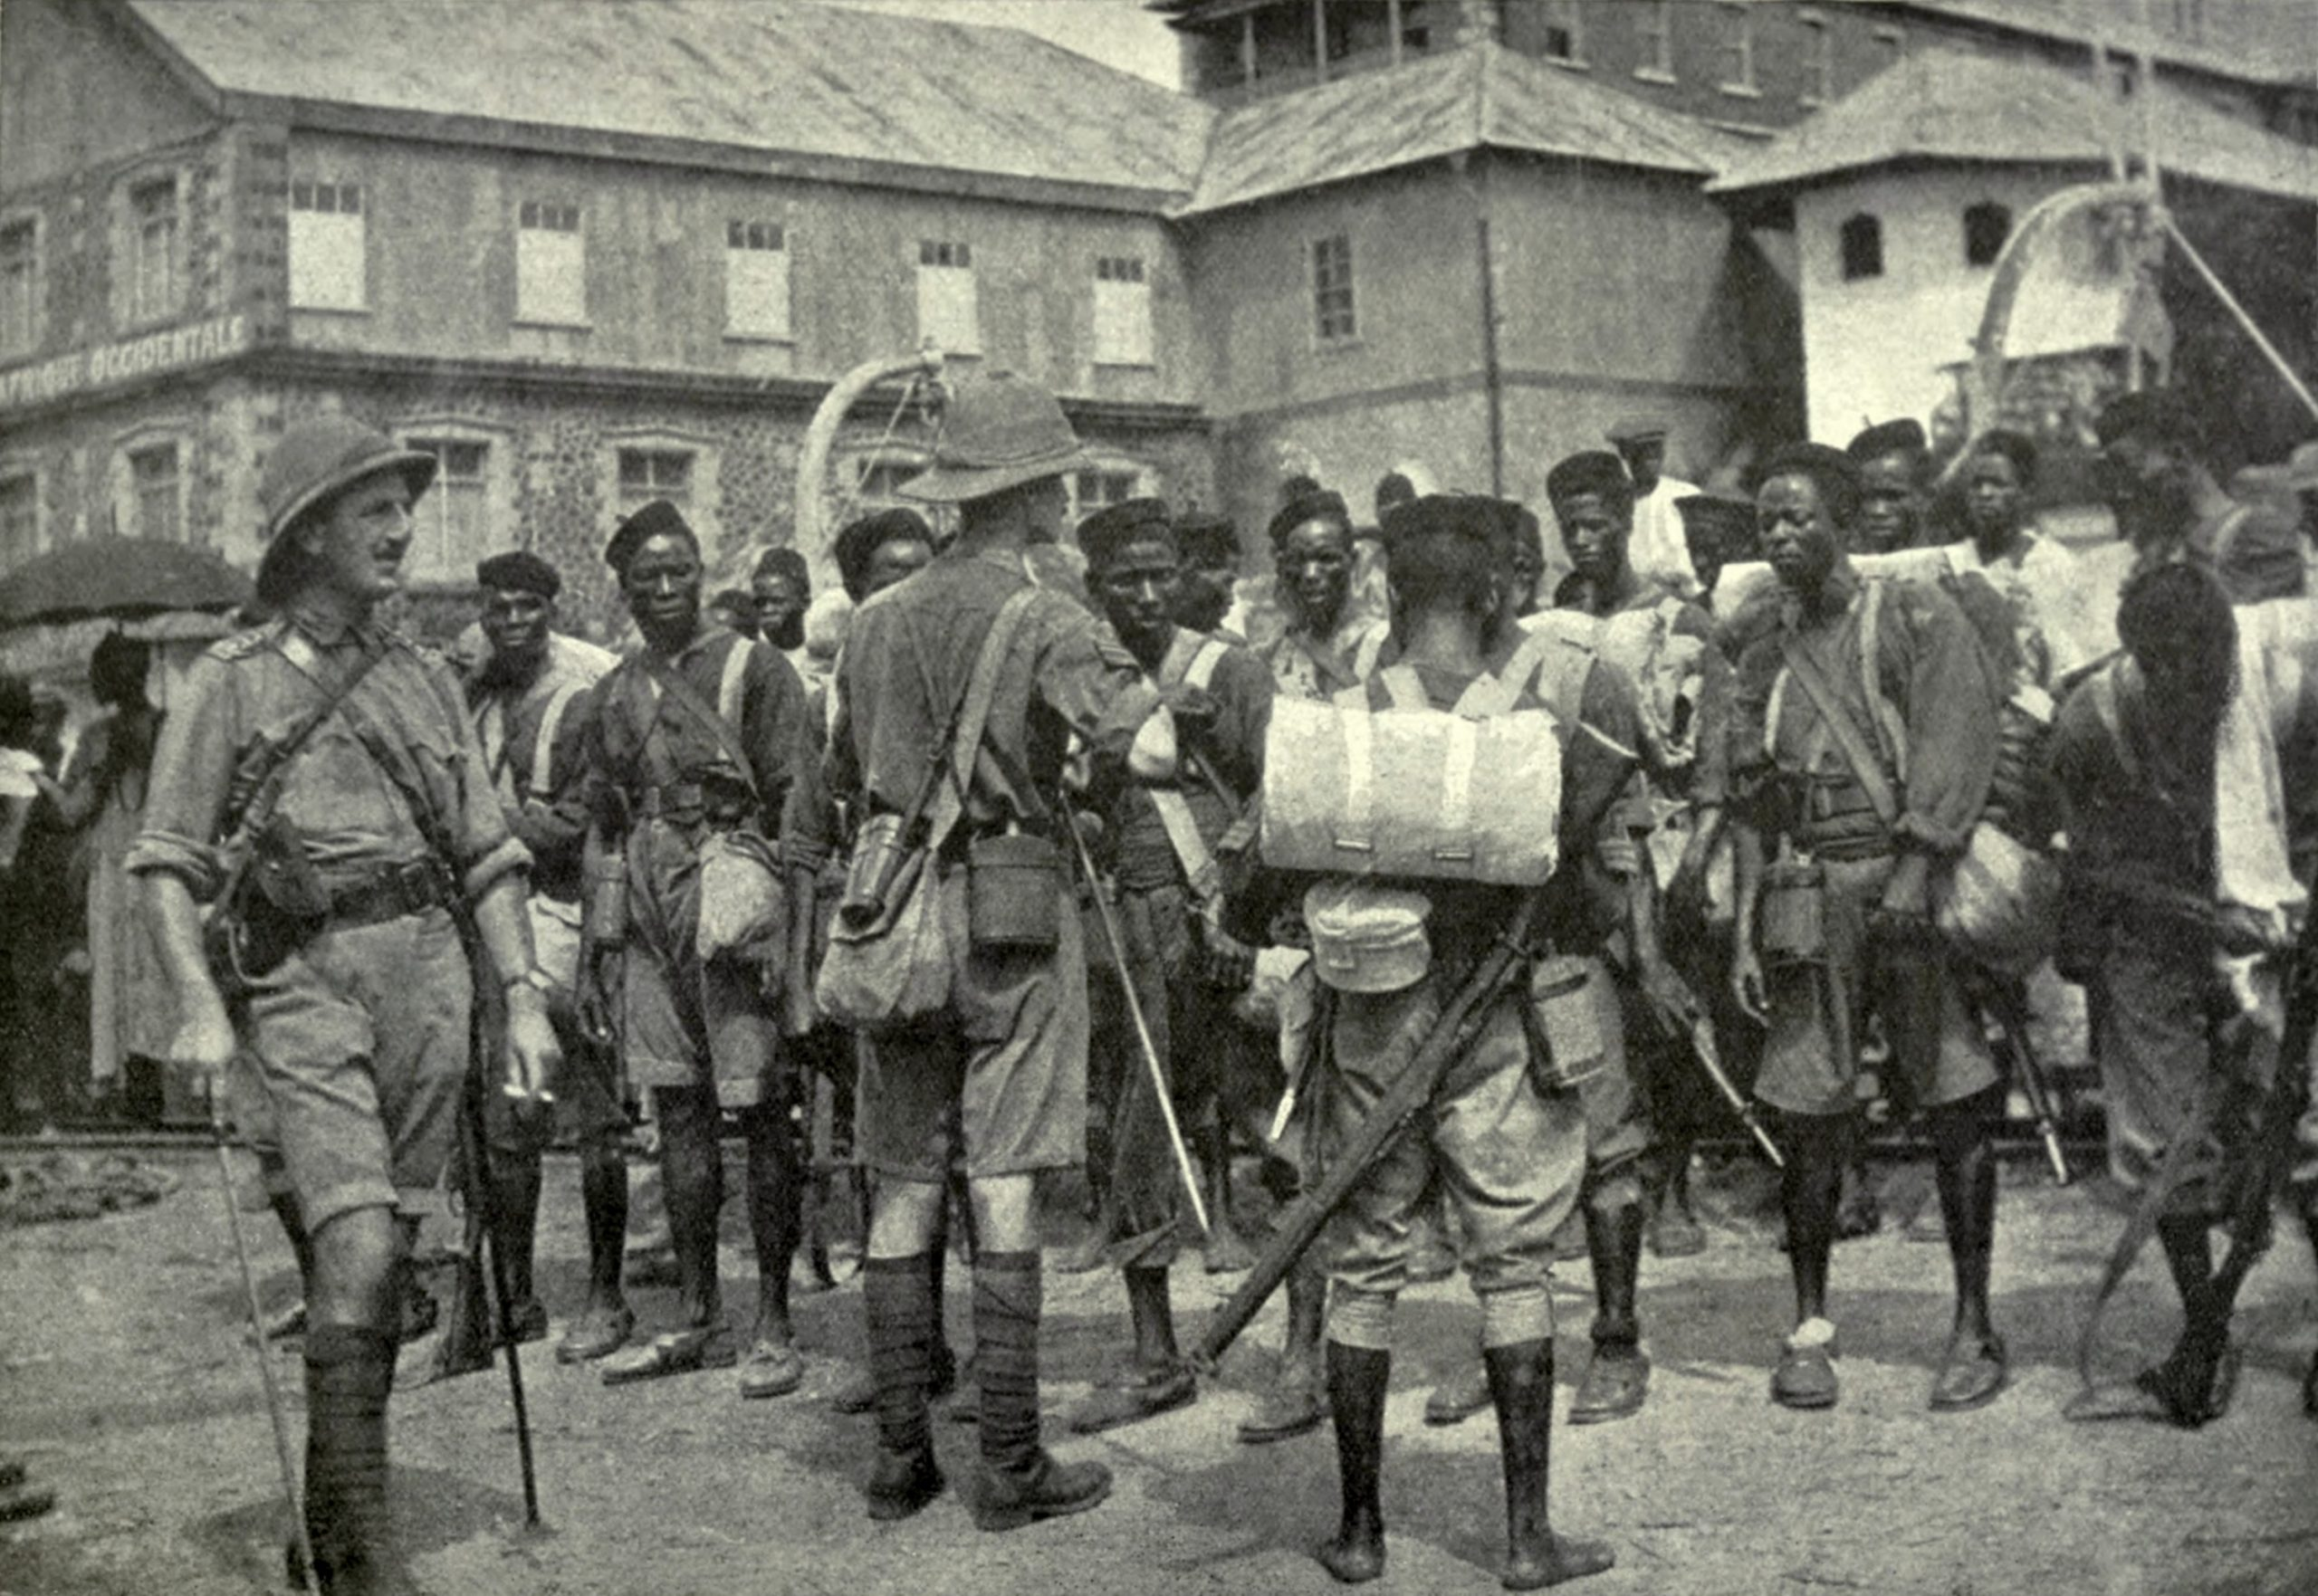 African colonial soldiers lining up in front of a white officer.